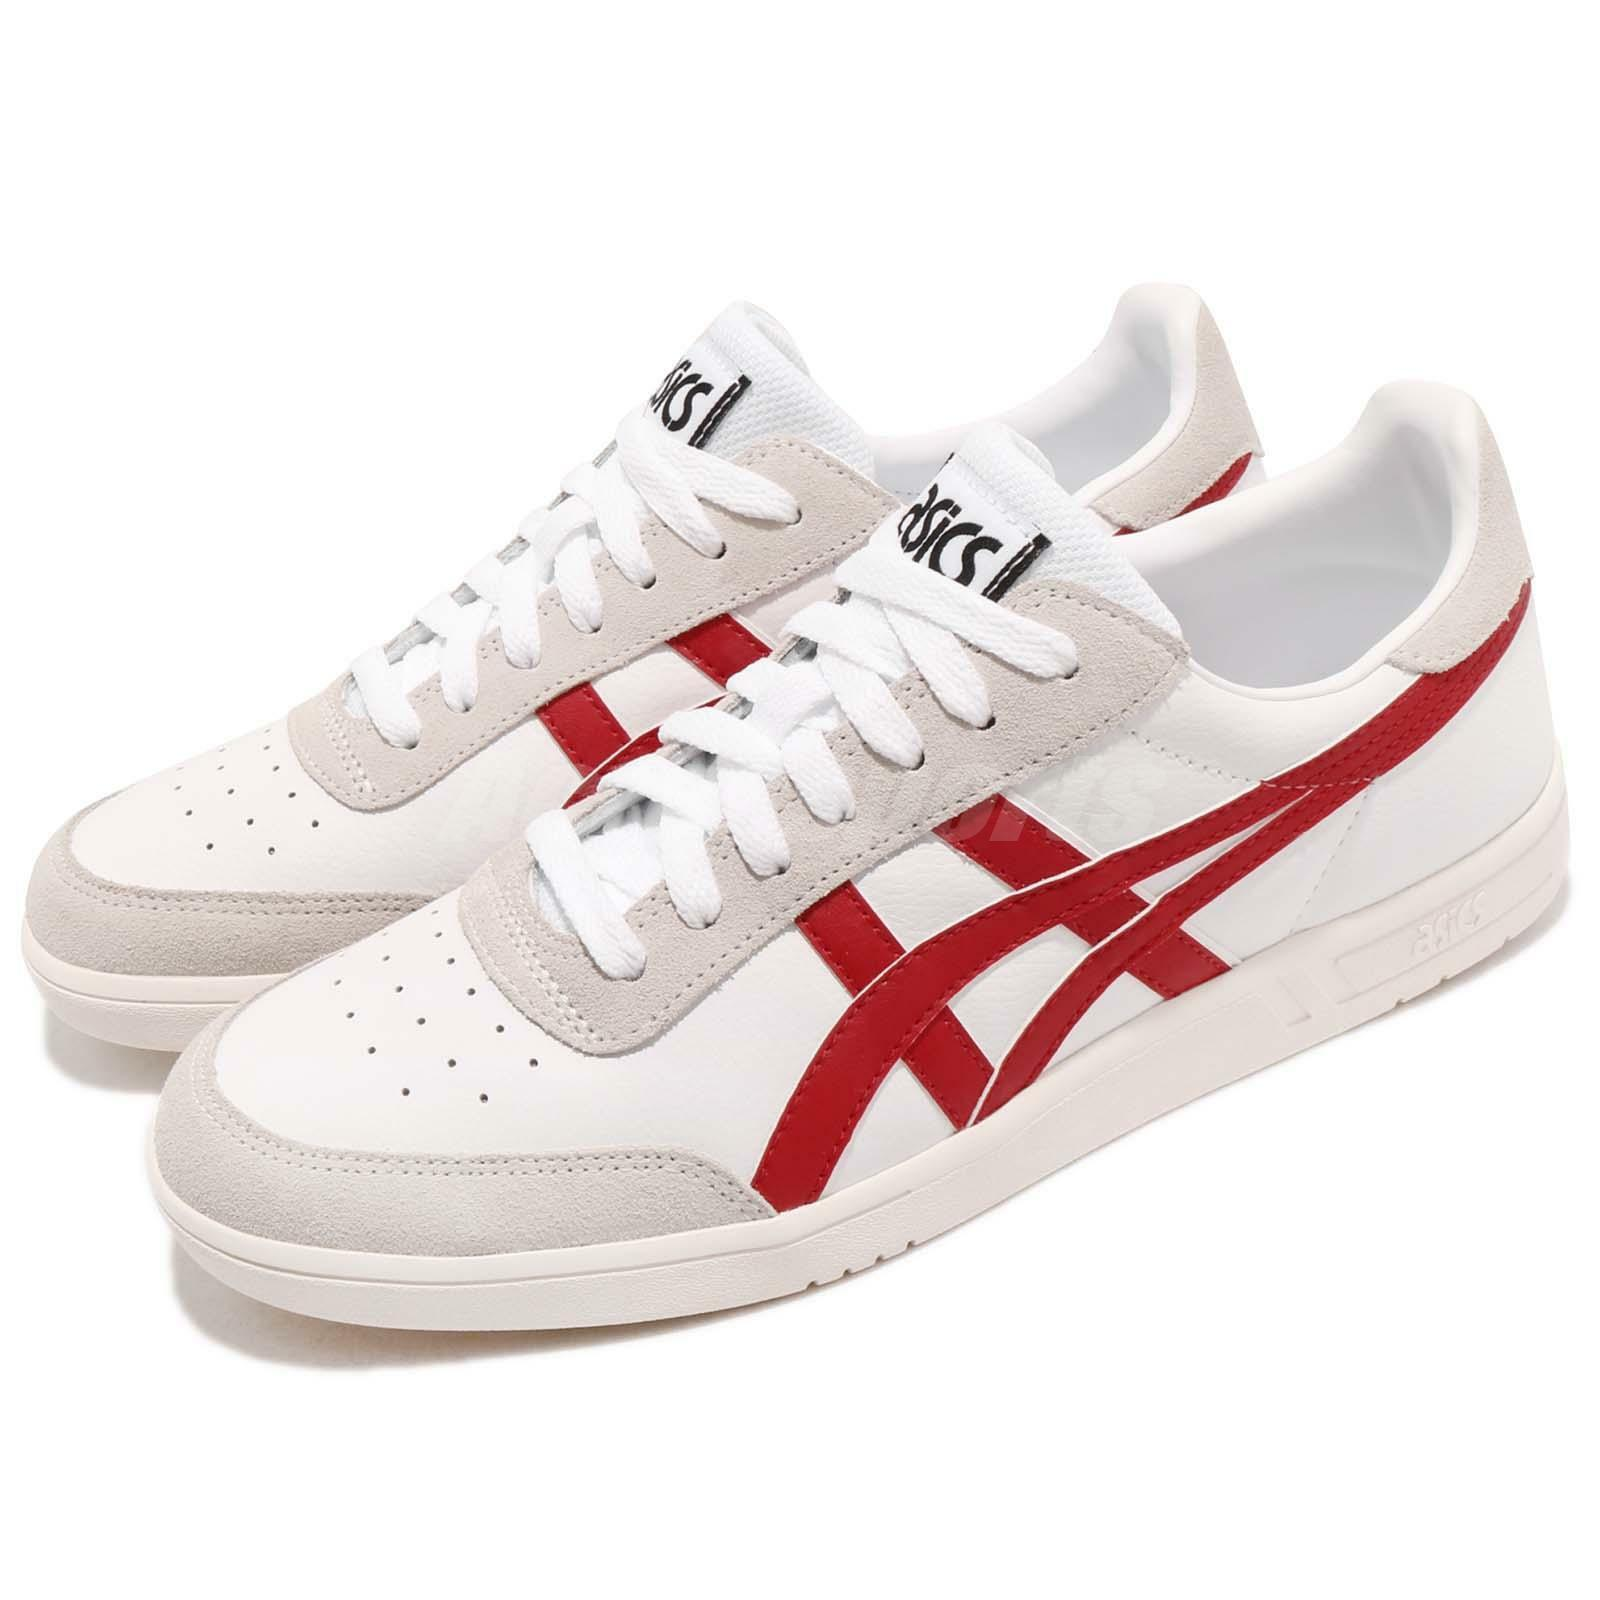 Asics Tiger Gel-Vickka TRS White Red Grey Men Casual shoes Sneakers 1193A033-103